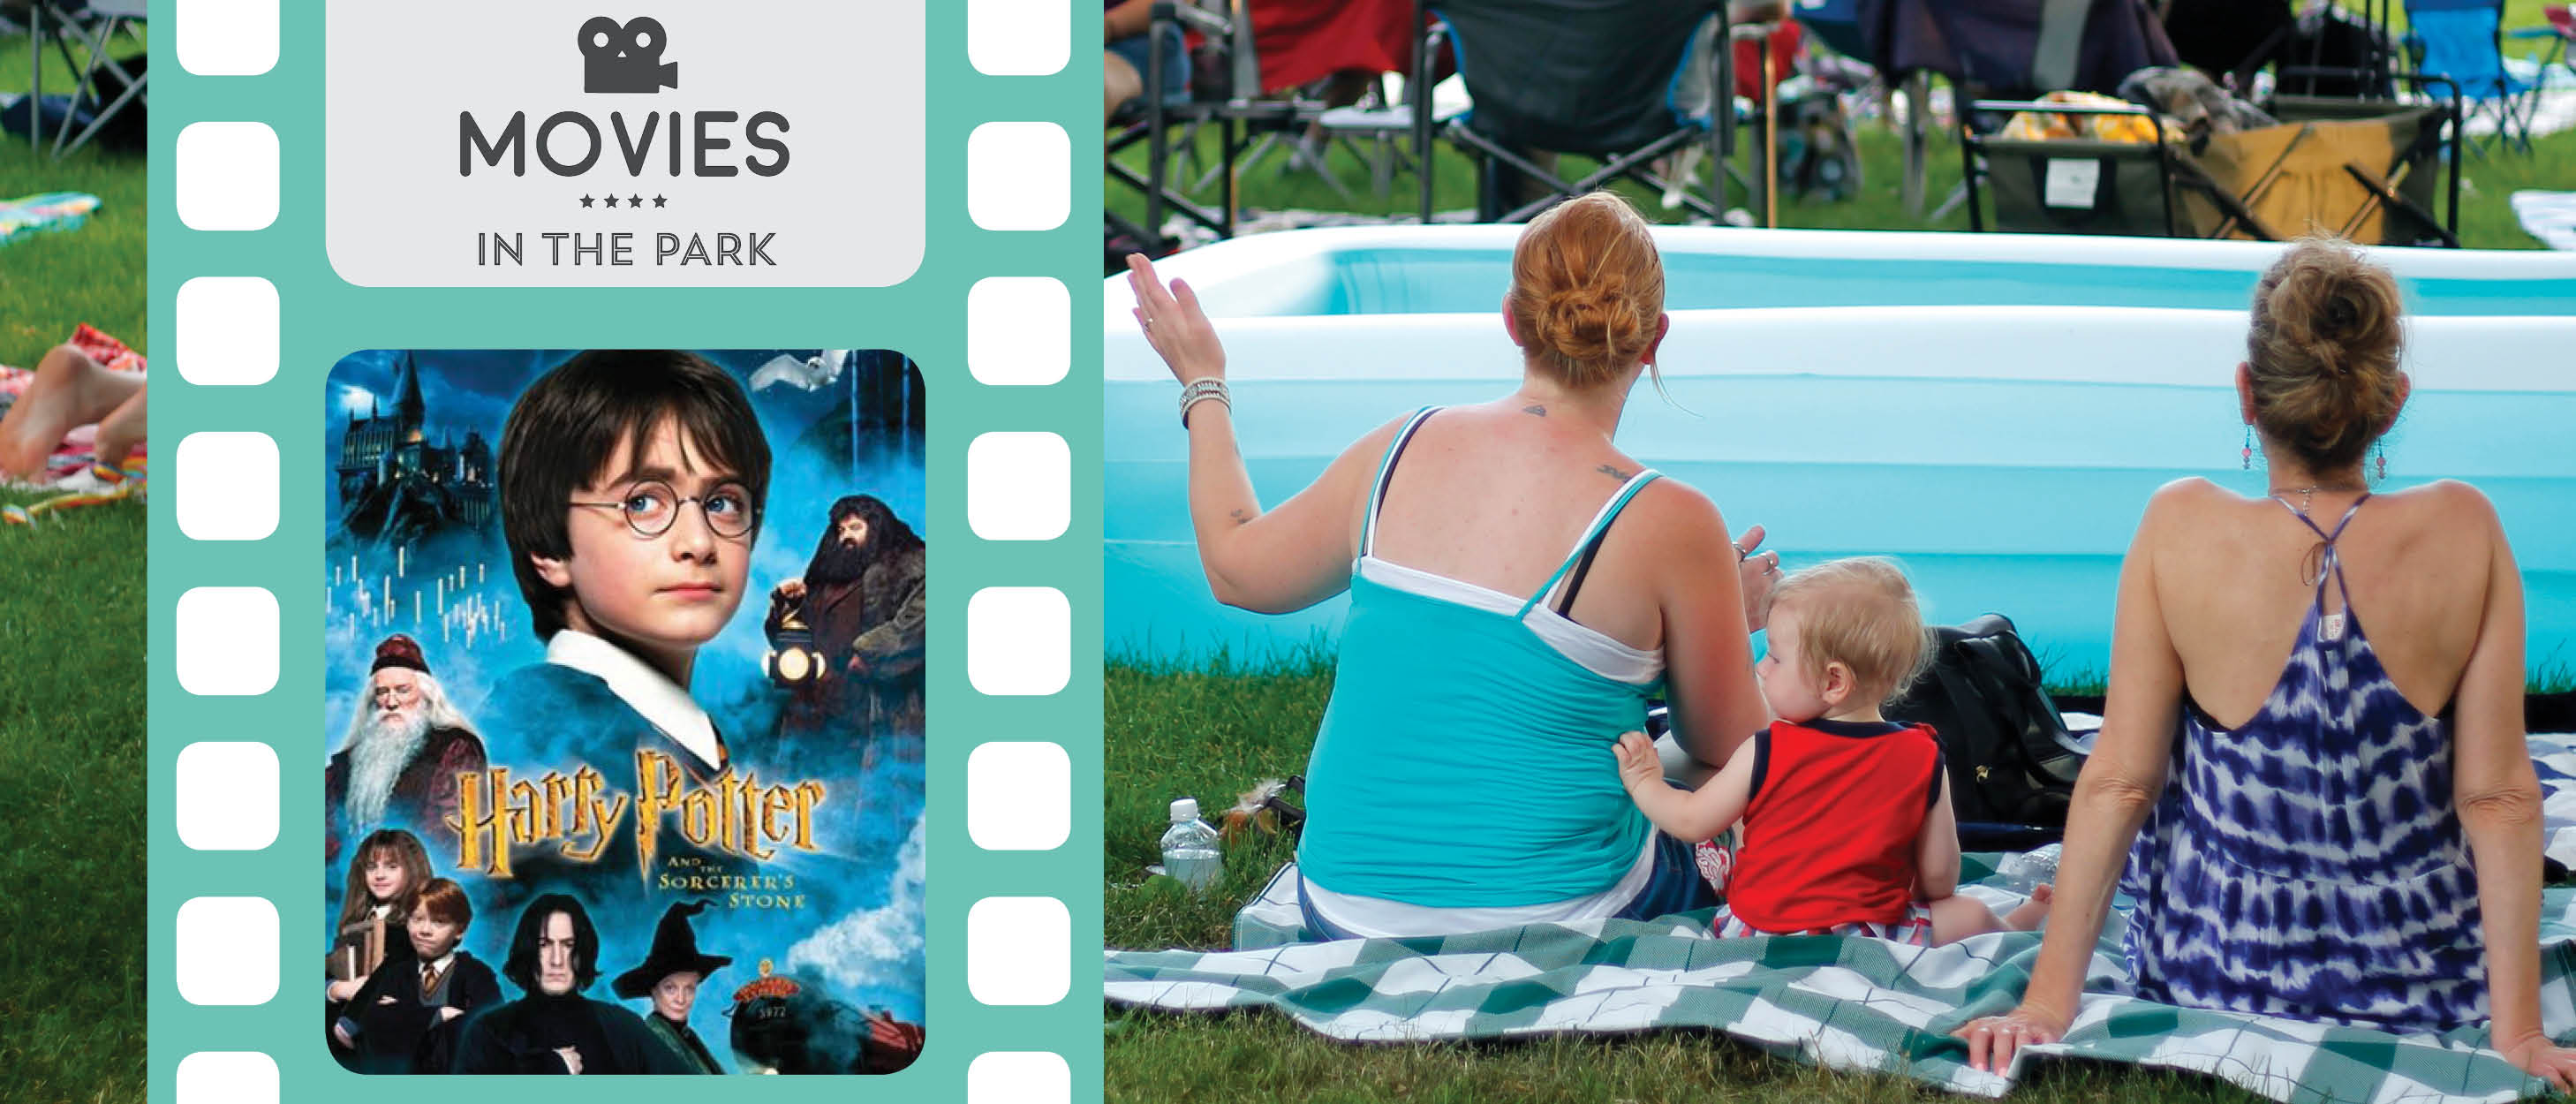 b93aac13dd Be spellbound by Harry Potter & The Sorcerer's Stone as the first film of  the 2019 Movies in the Park season! Muggles and wizards alike are welcome  to this ...